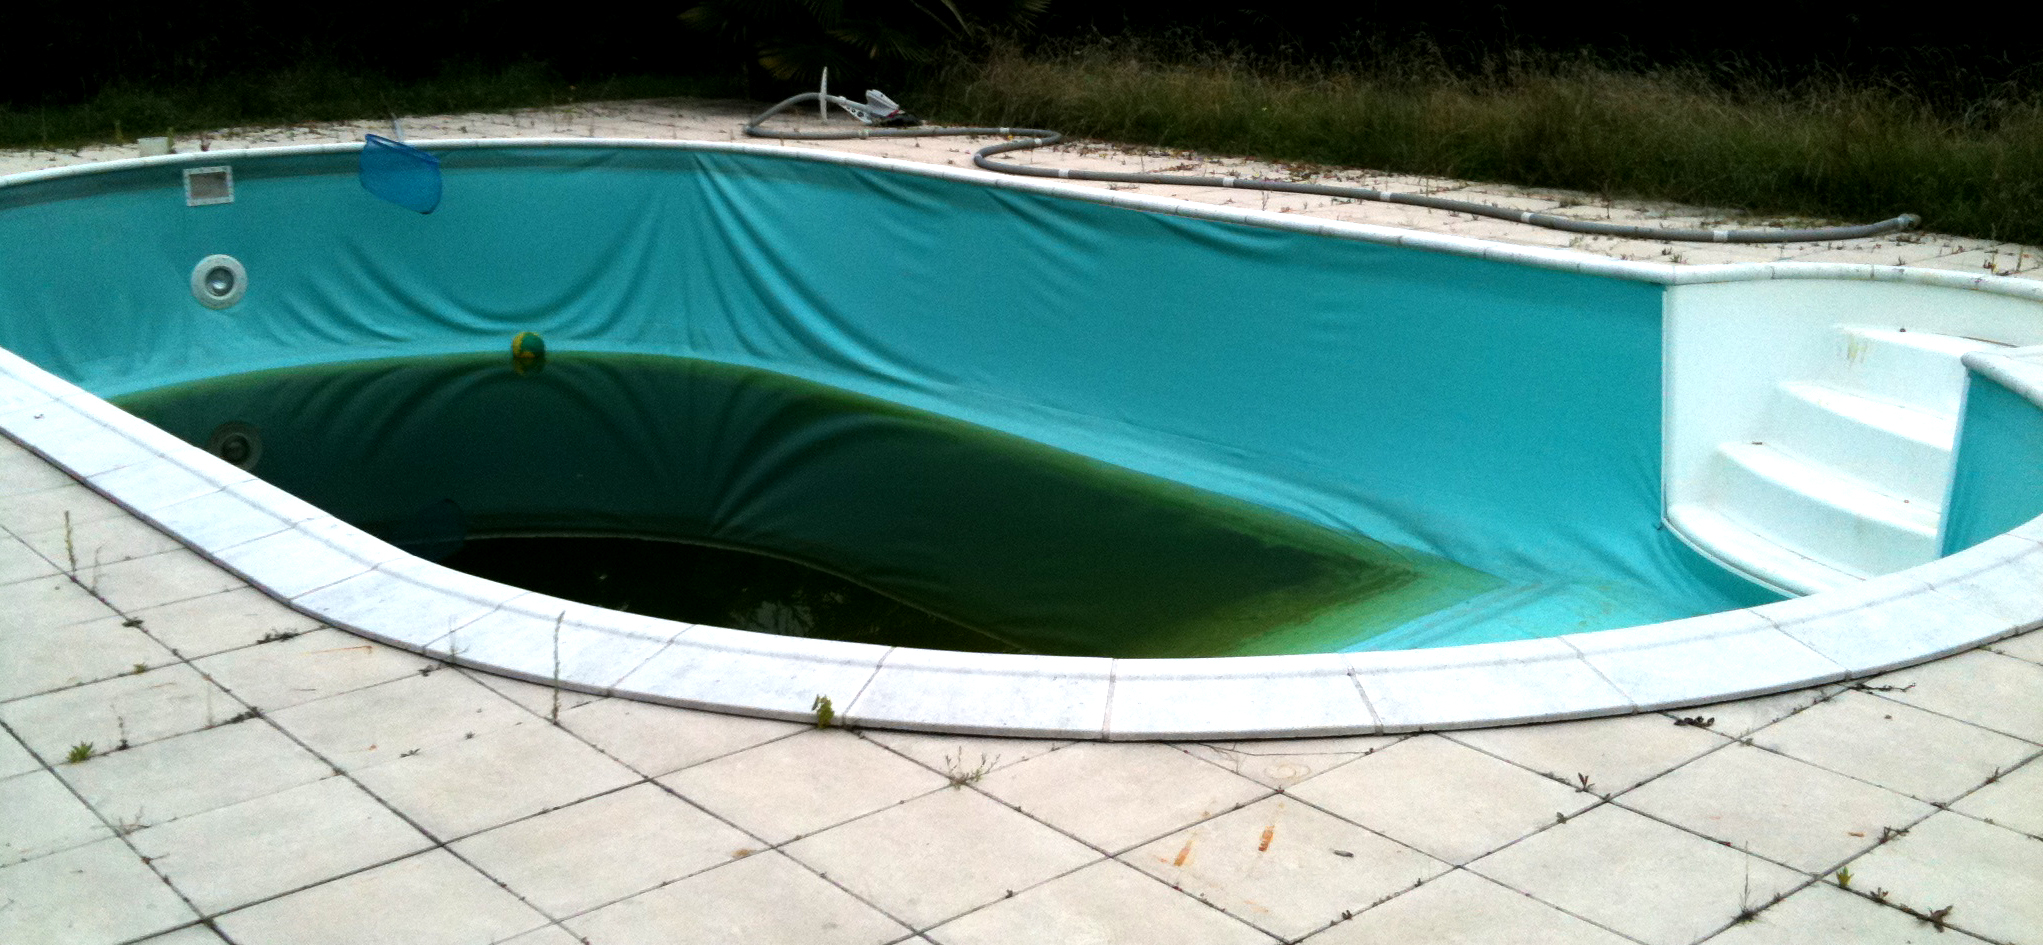 R novation d une piscine waterair - Piscine inox sans liner ...